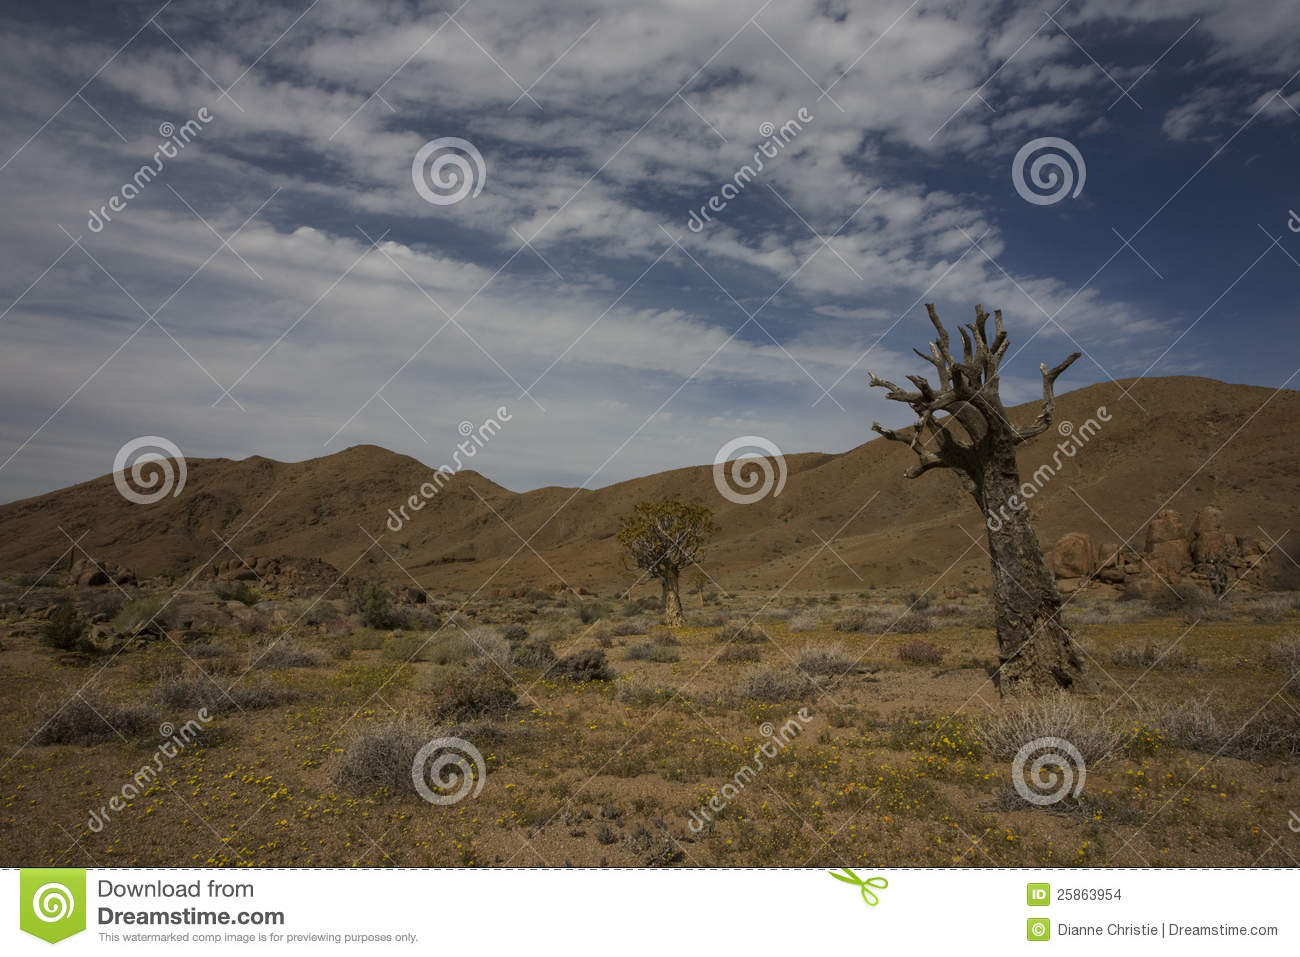 Richtersveld nationalpark, South Africa.